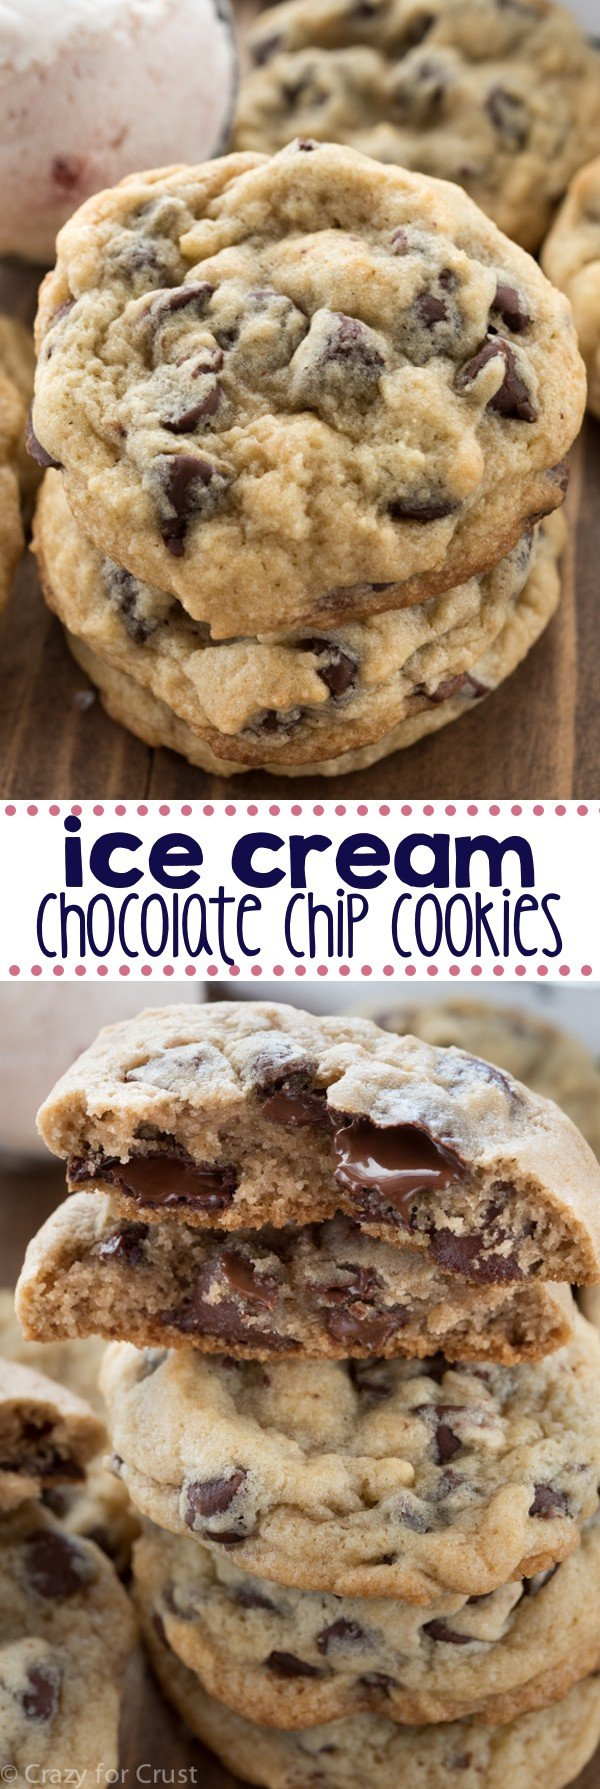 Ice Cream Chocolate Chip Cookies - Crazy for Crust